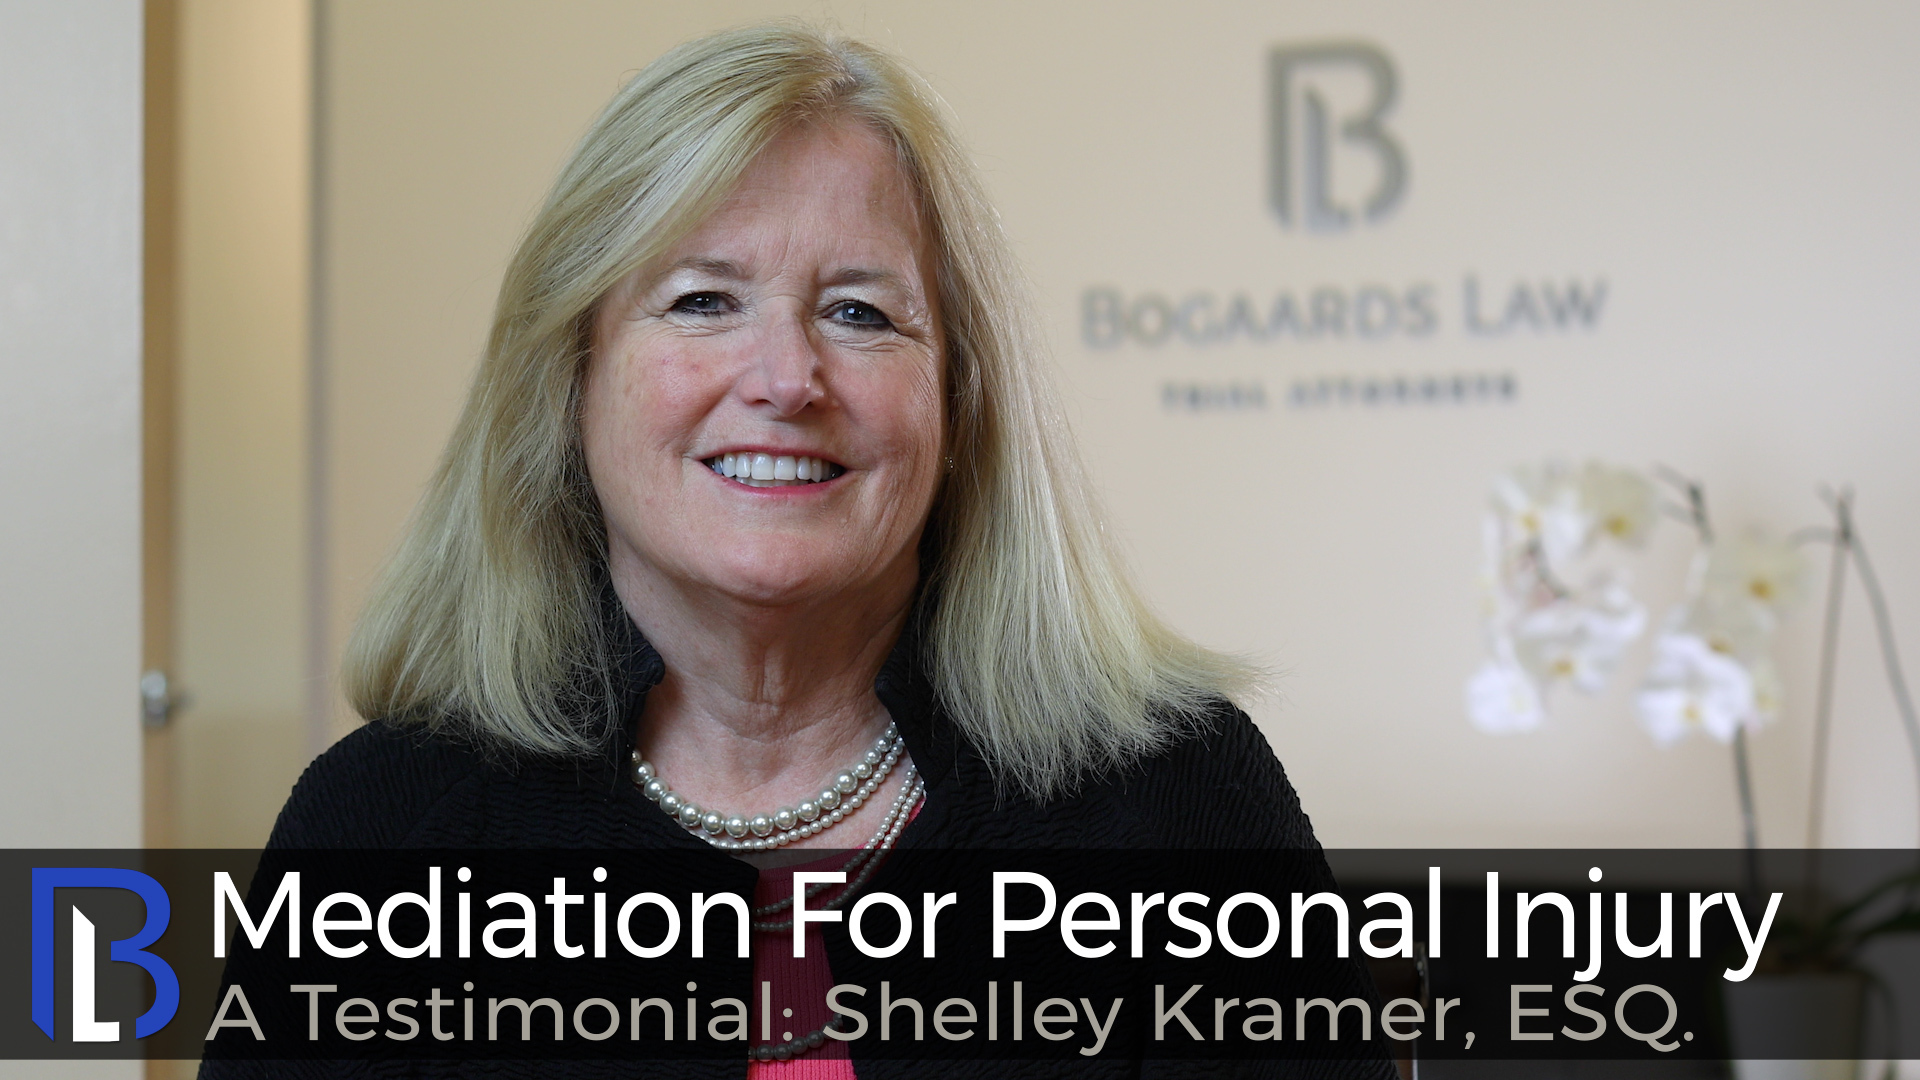 Mediation For Personal Injury--A Testimonial: Shelley Kramer, ESQ